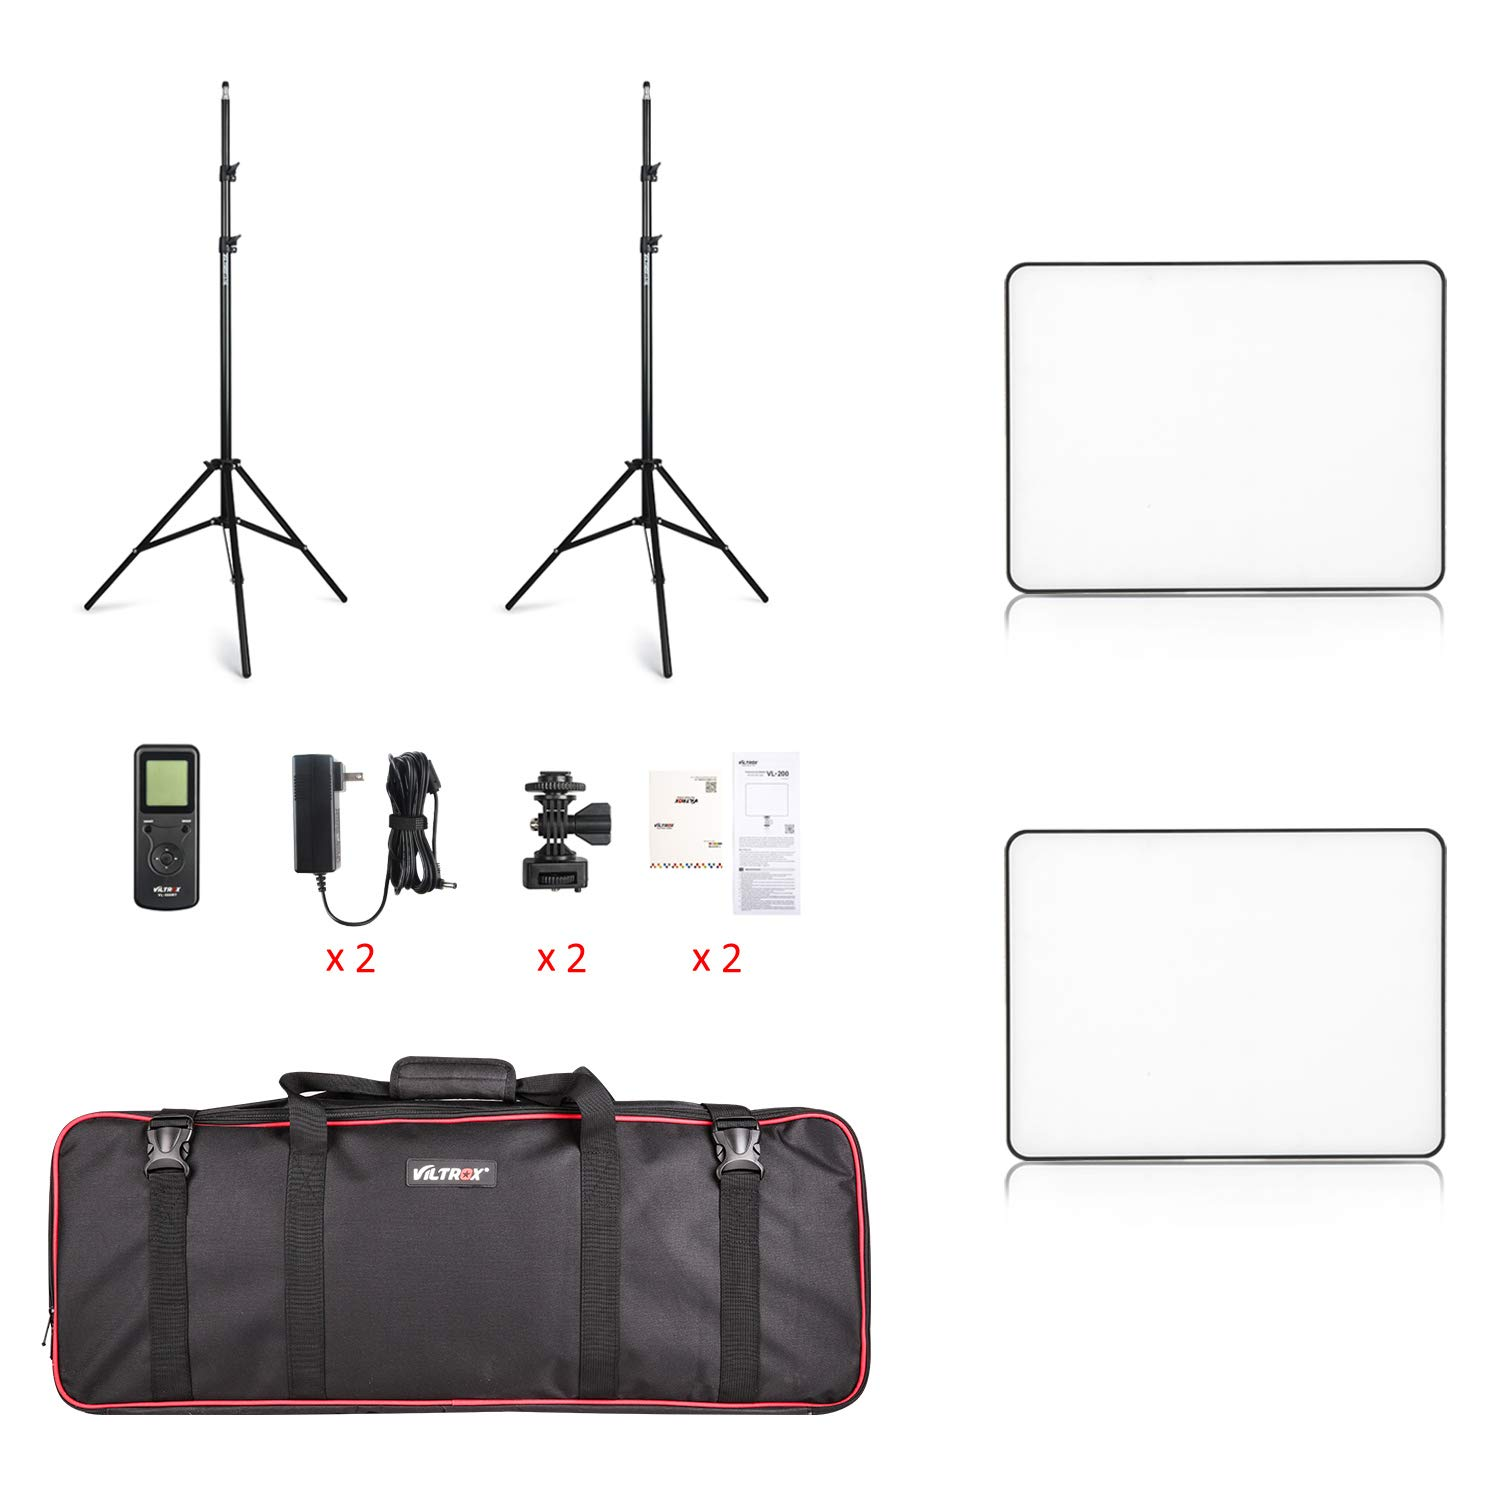 VILTROX 2-Pack VL-200 3300K-5600K CRI95 Super Slim LED Video Light Panel Photography Lighting Kit with Light Stand, Hot Shoe Adapter, Remote Controller, AC Adapter for YouTube Studio Video Shooting by VILTROX (Image #8)